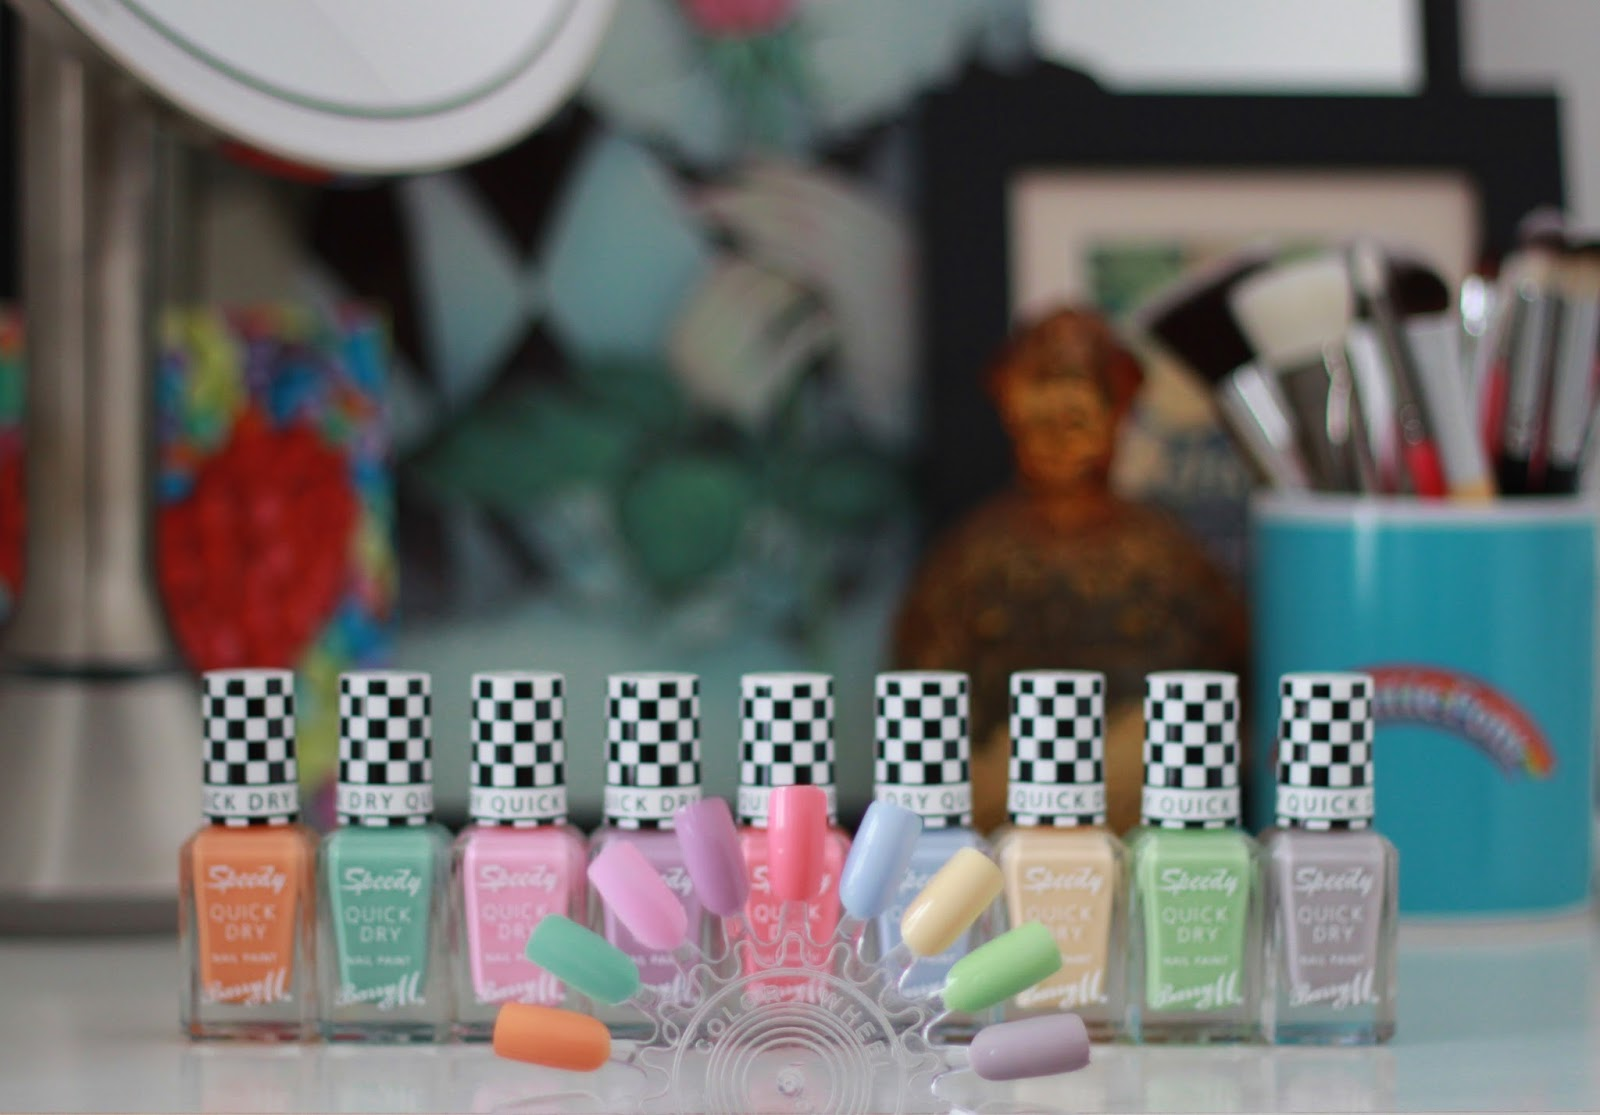 Barry M Speedy quick dry nail paint collection swatches